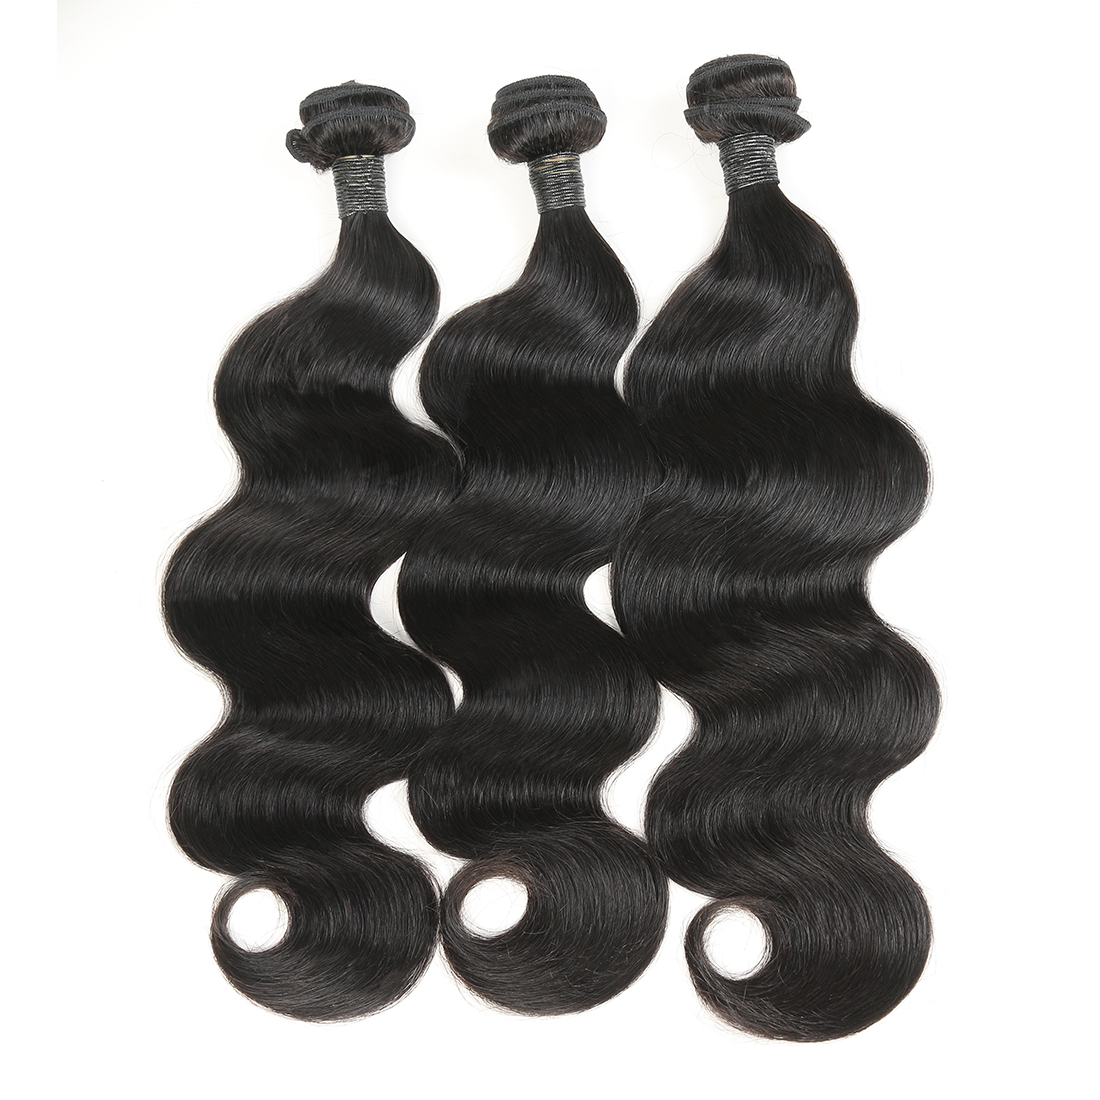 1/3/4 Bundles Peruvian Body Wave Hair Extensions zing silky 100% Human Hair Bundles 300g Natural Color Remy Hair Weave for black(China)